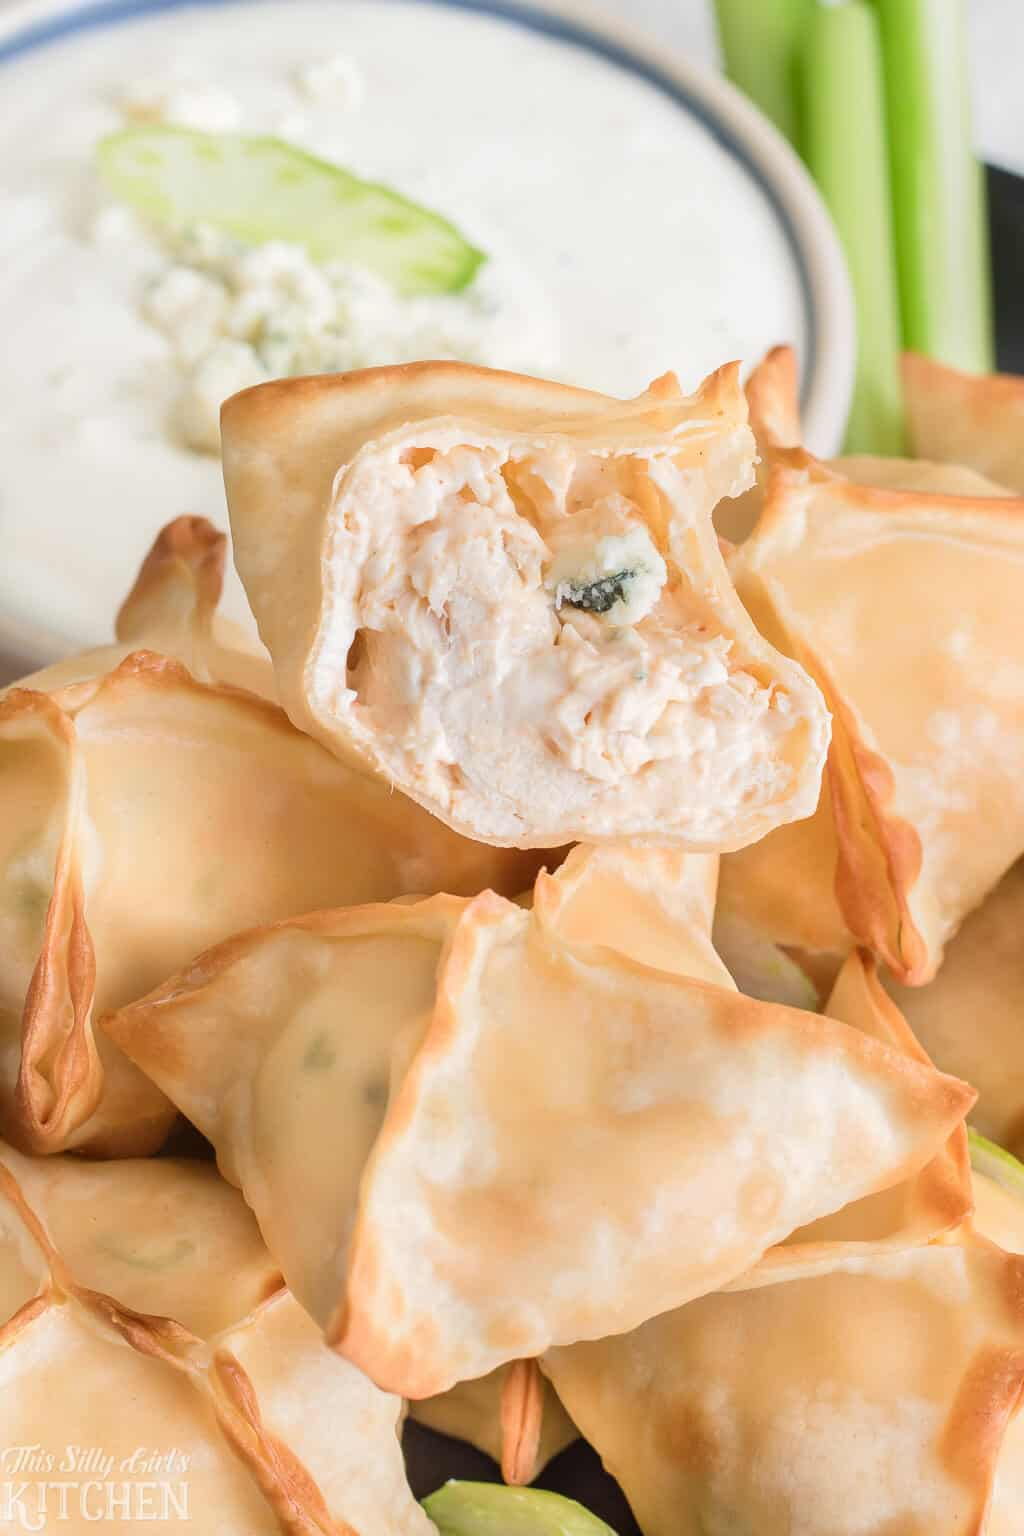 Buffalo Chicken Cream Cheese Wontons, only 6 ingredients and ready in 15 minutes, perfect for game day! #Recipe from ThisSillyGirlsKitchen.com #buffalochicken #wontons #airfryer